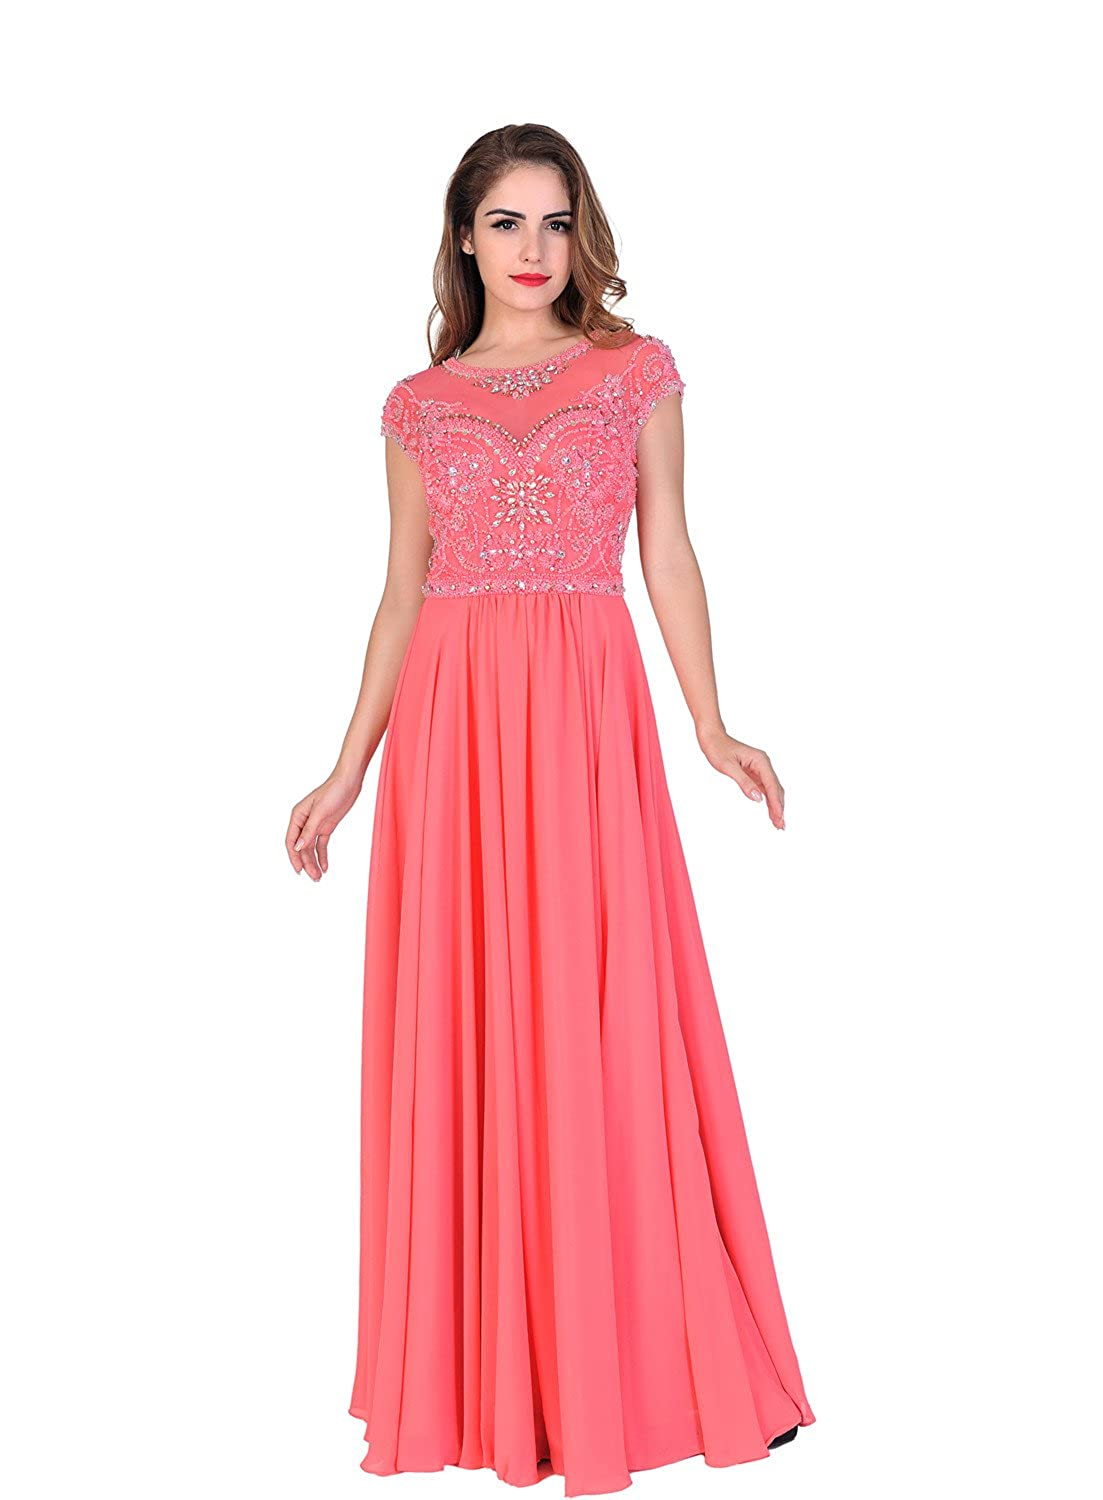 Amazon.com: Chic Belle Women Prom Dresses Long Formal Evening Gowns ...